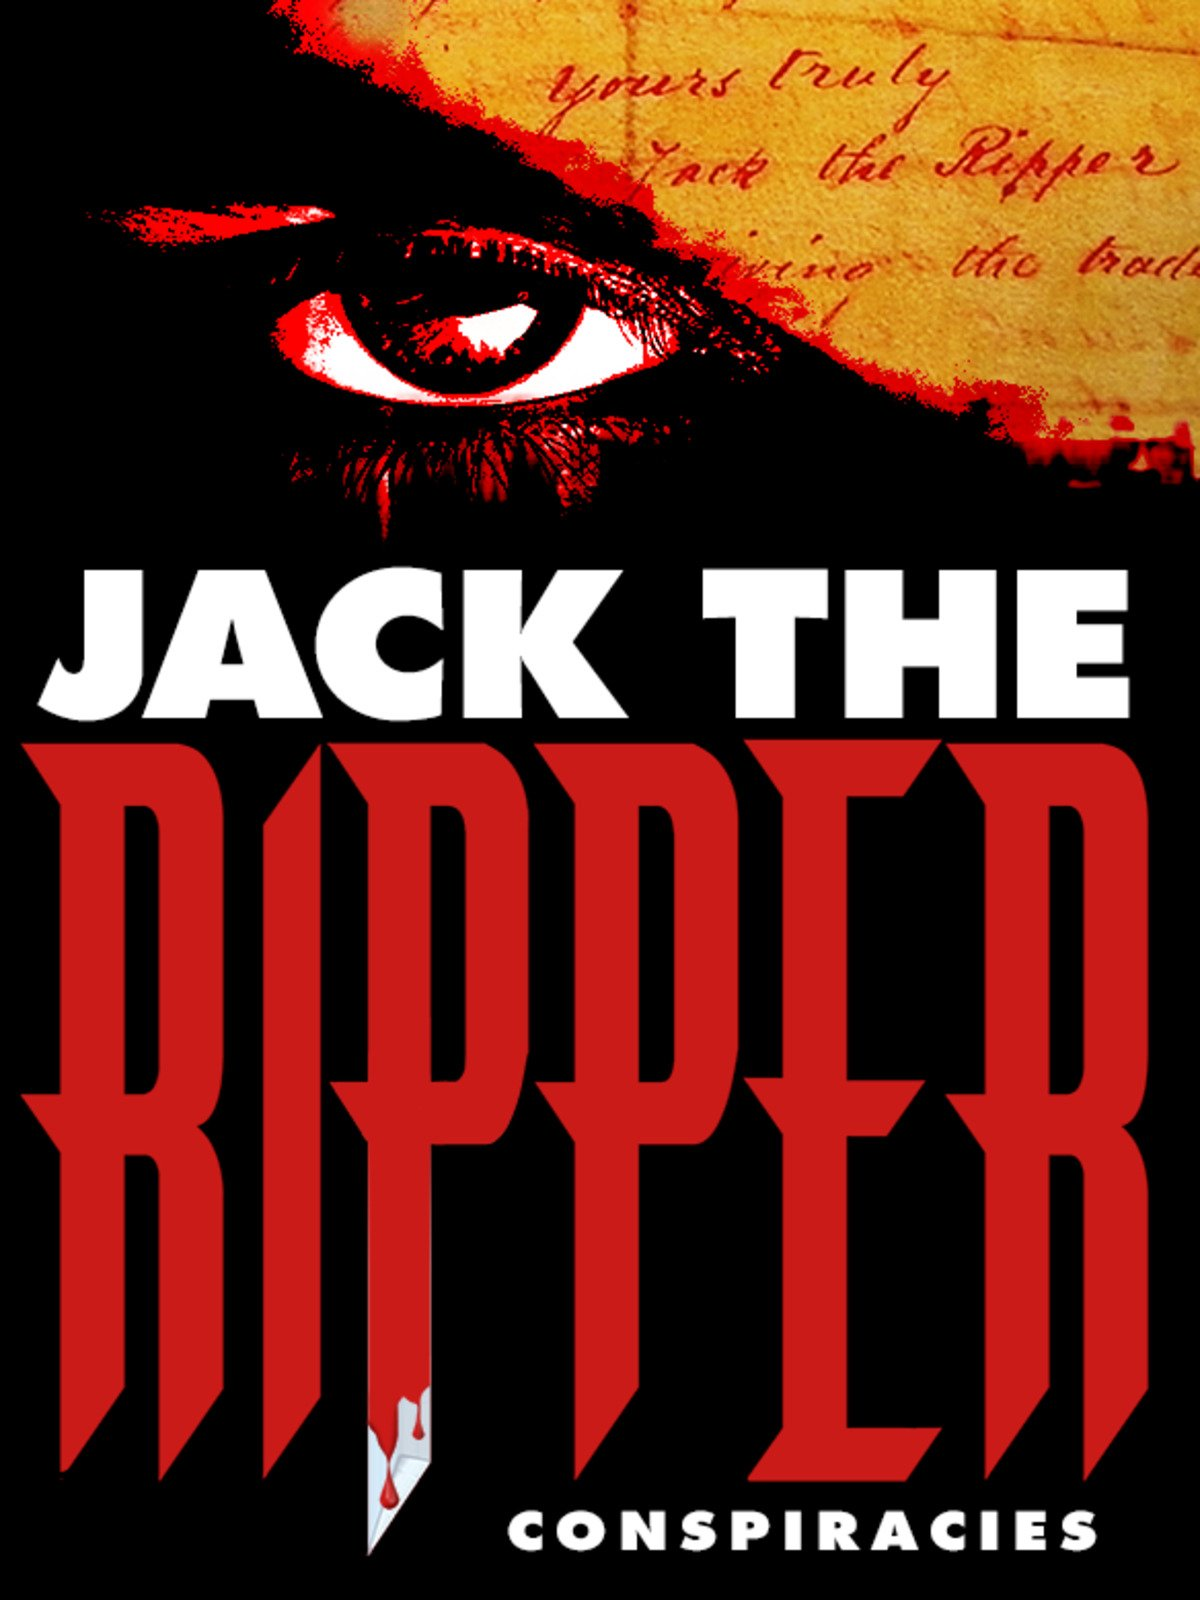 Jack The Ripper: Conspiracies on Amazon Prime Video UK